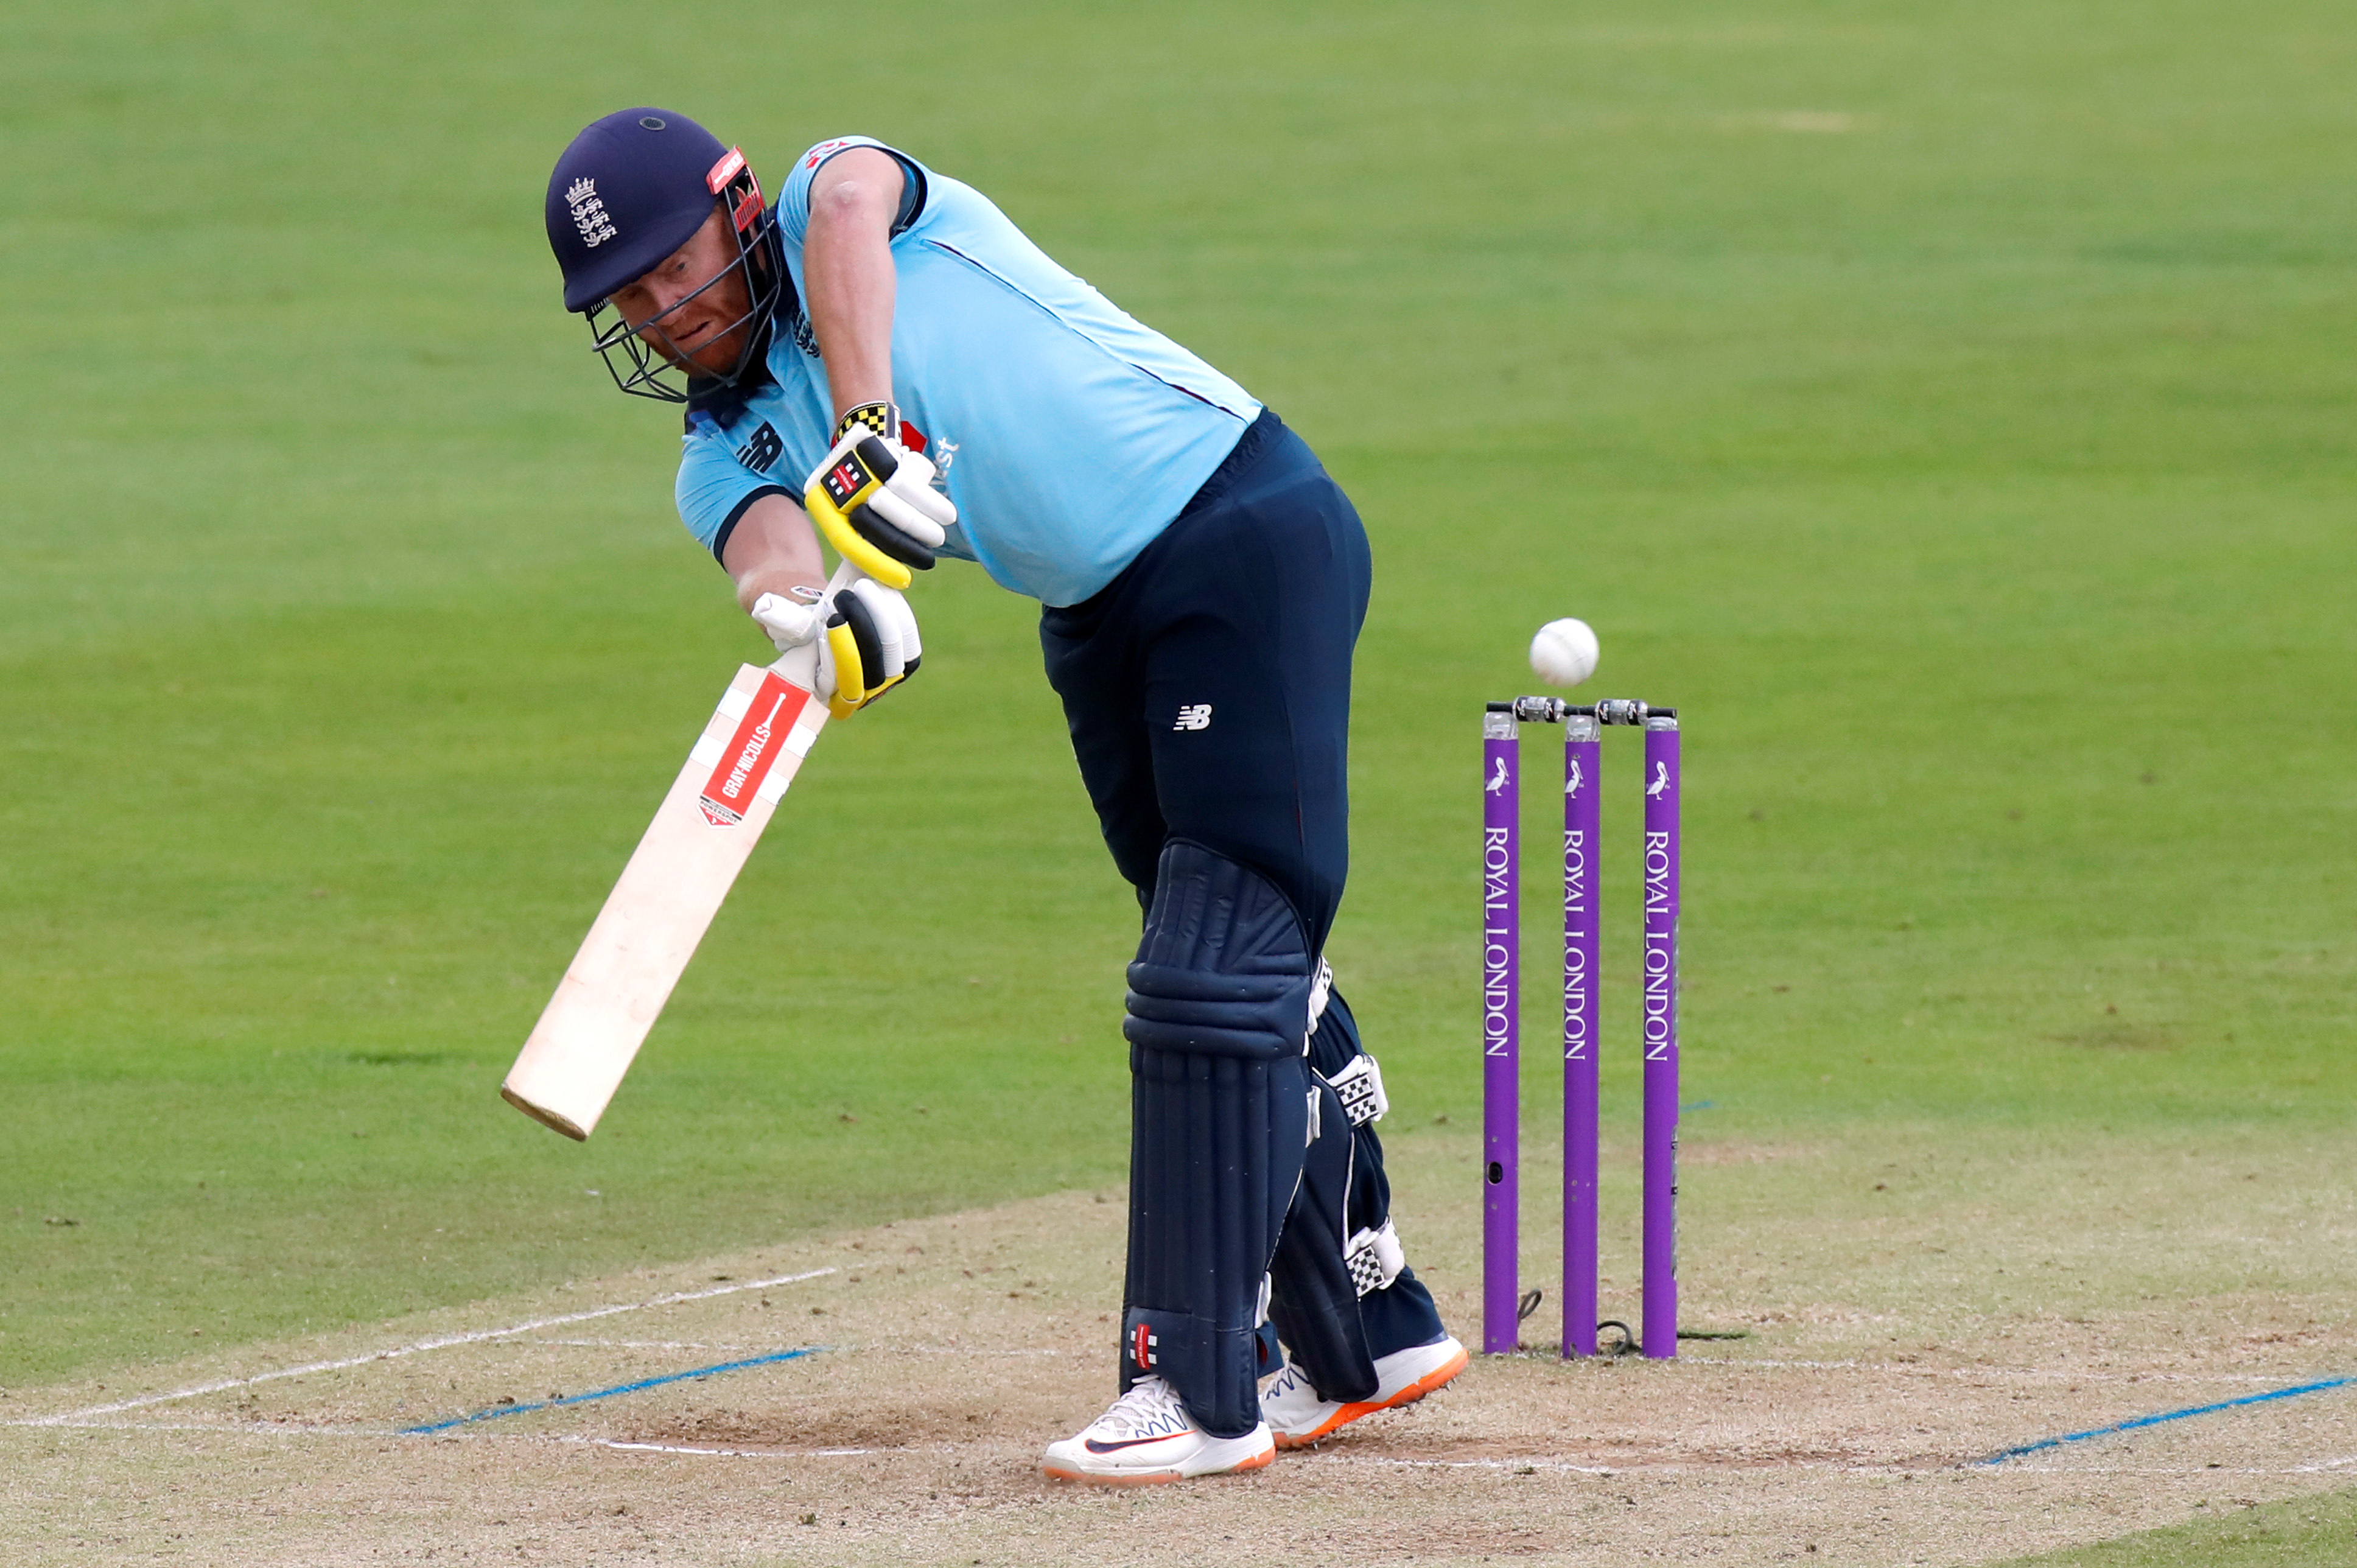 England's Jonny Bairstow in action. Photo: Reuters